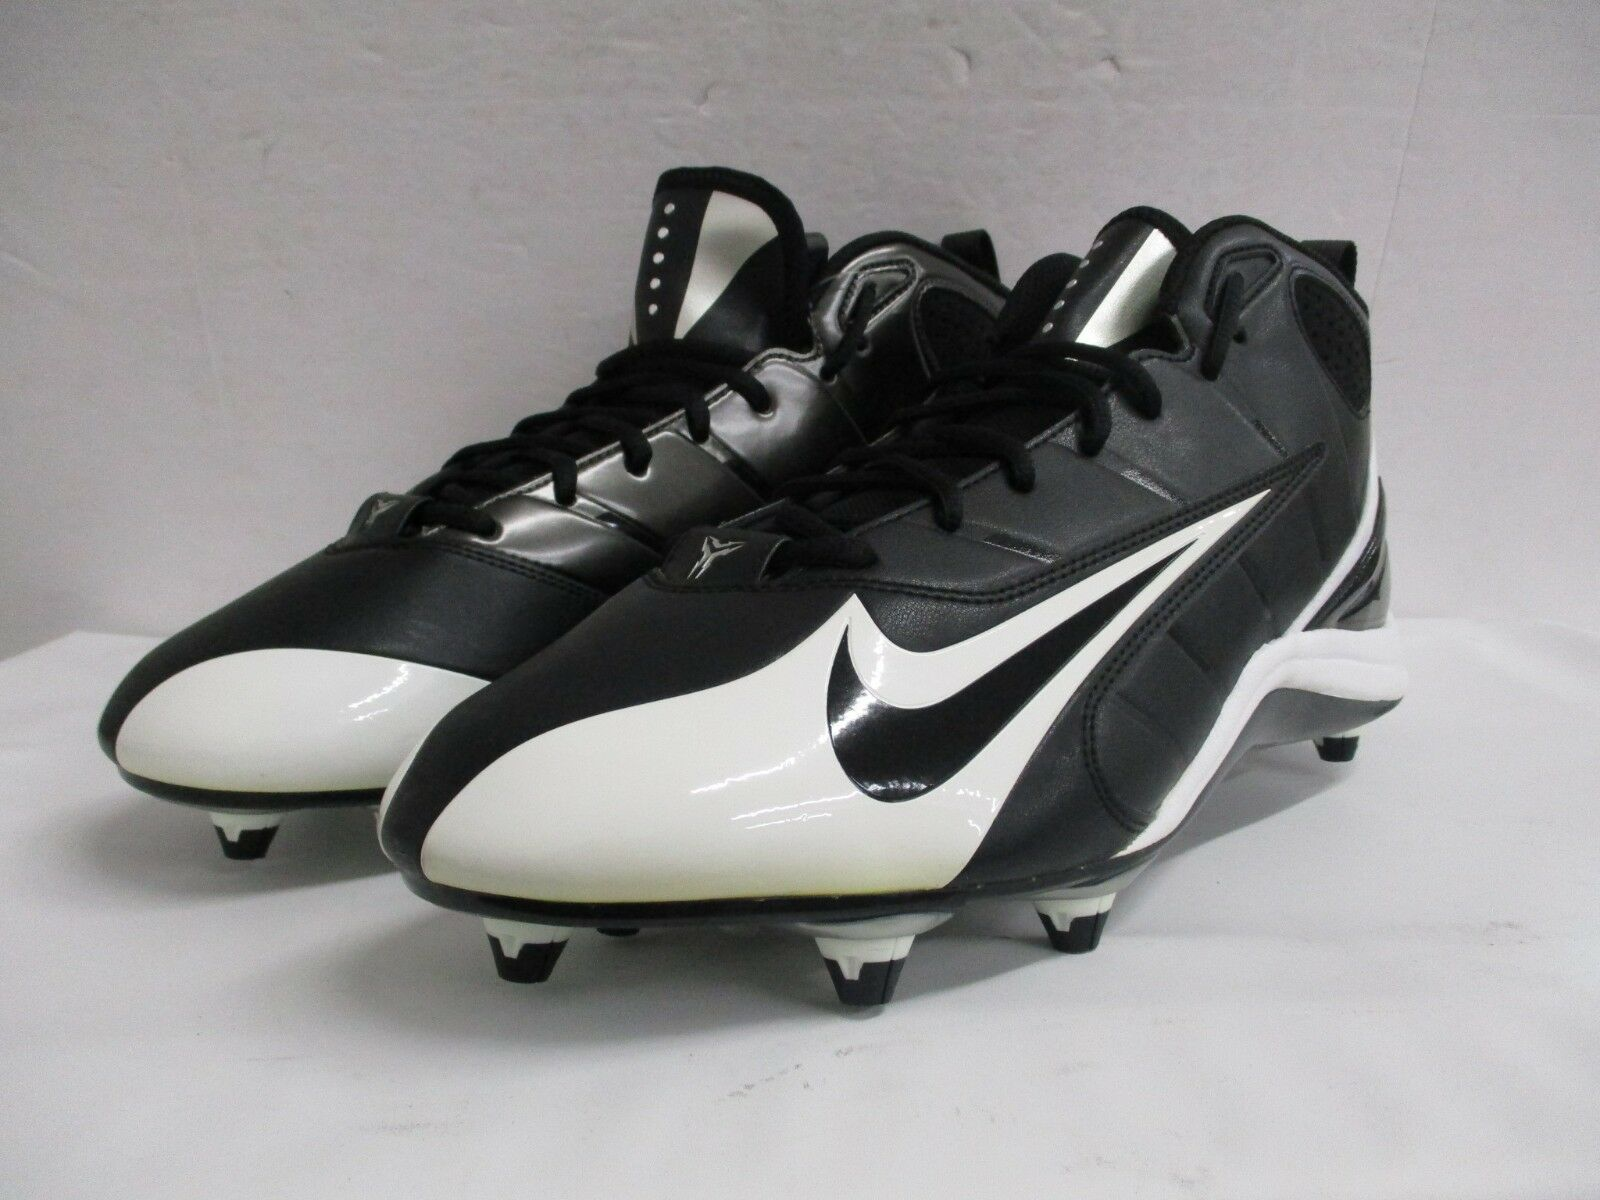 New in 3/4 Box Nike homme Speed Strike D 3/4 in noir Taille: 12.5 06a617